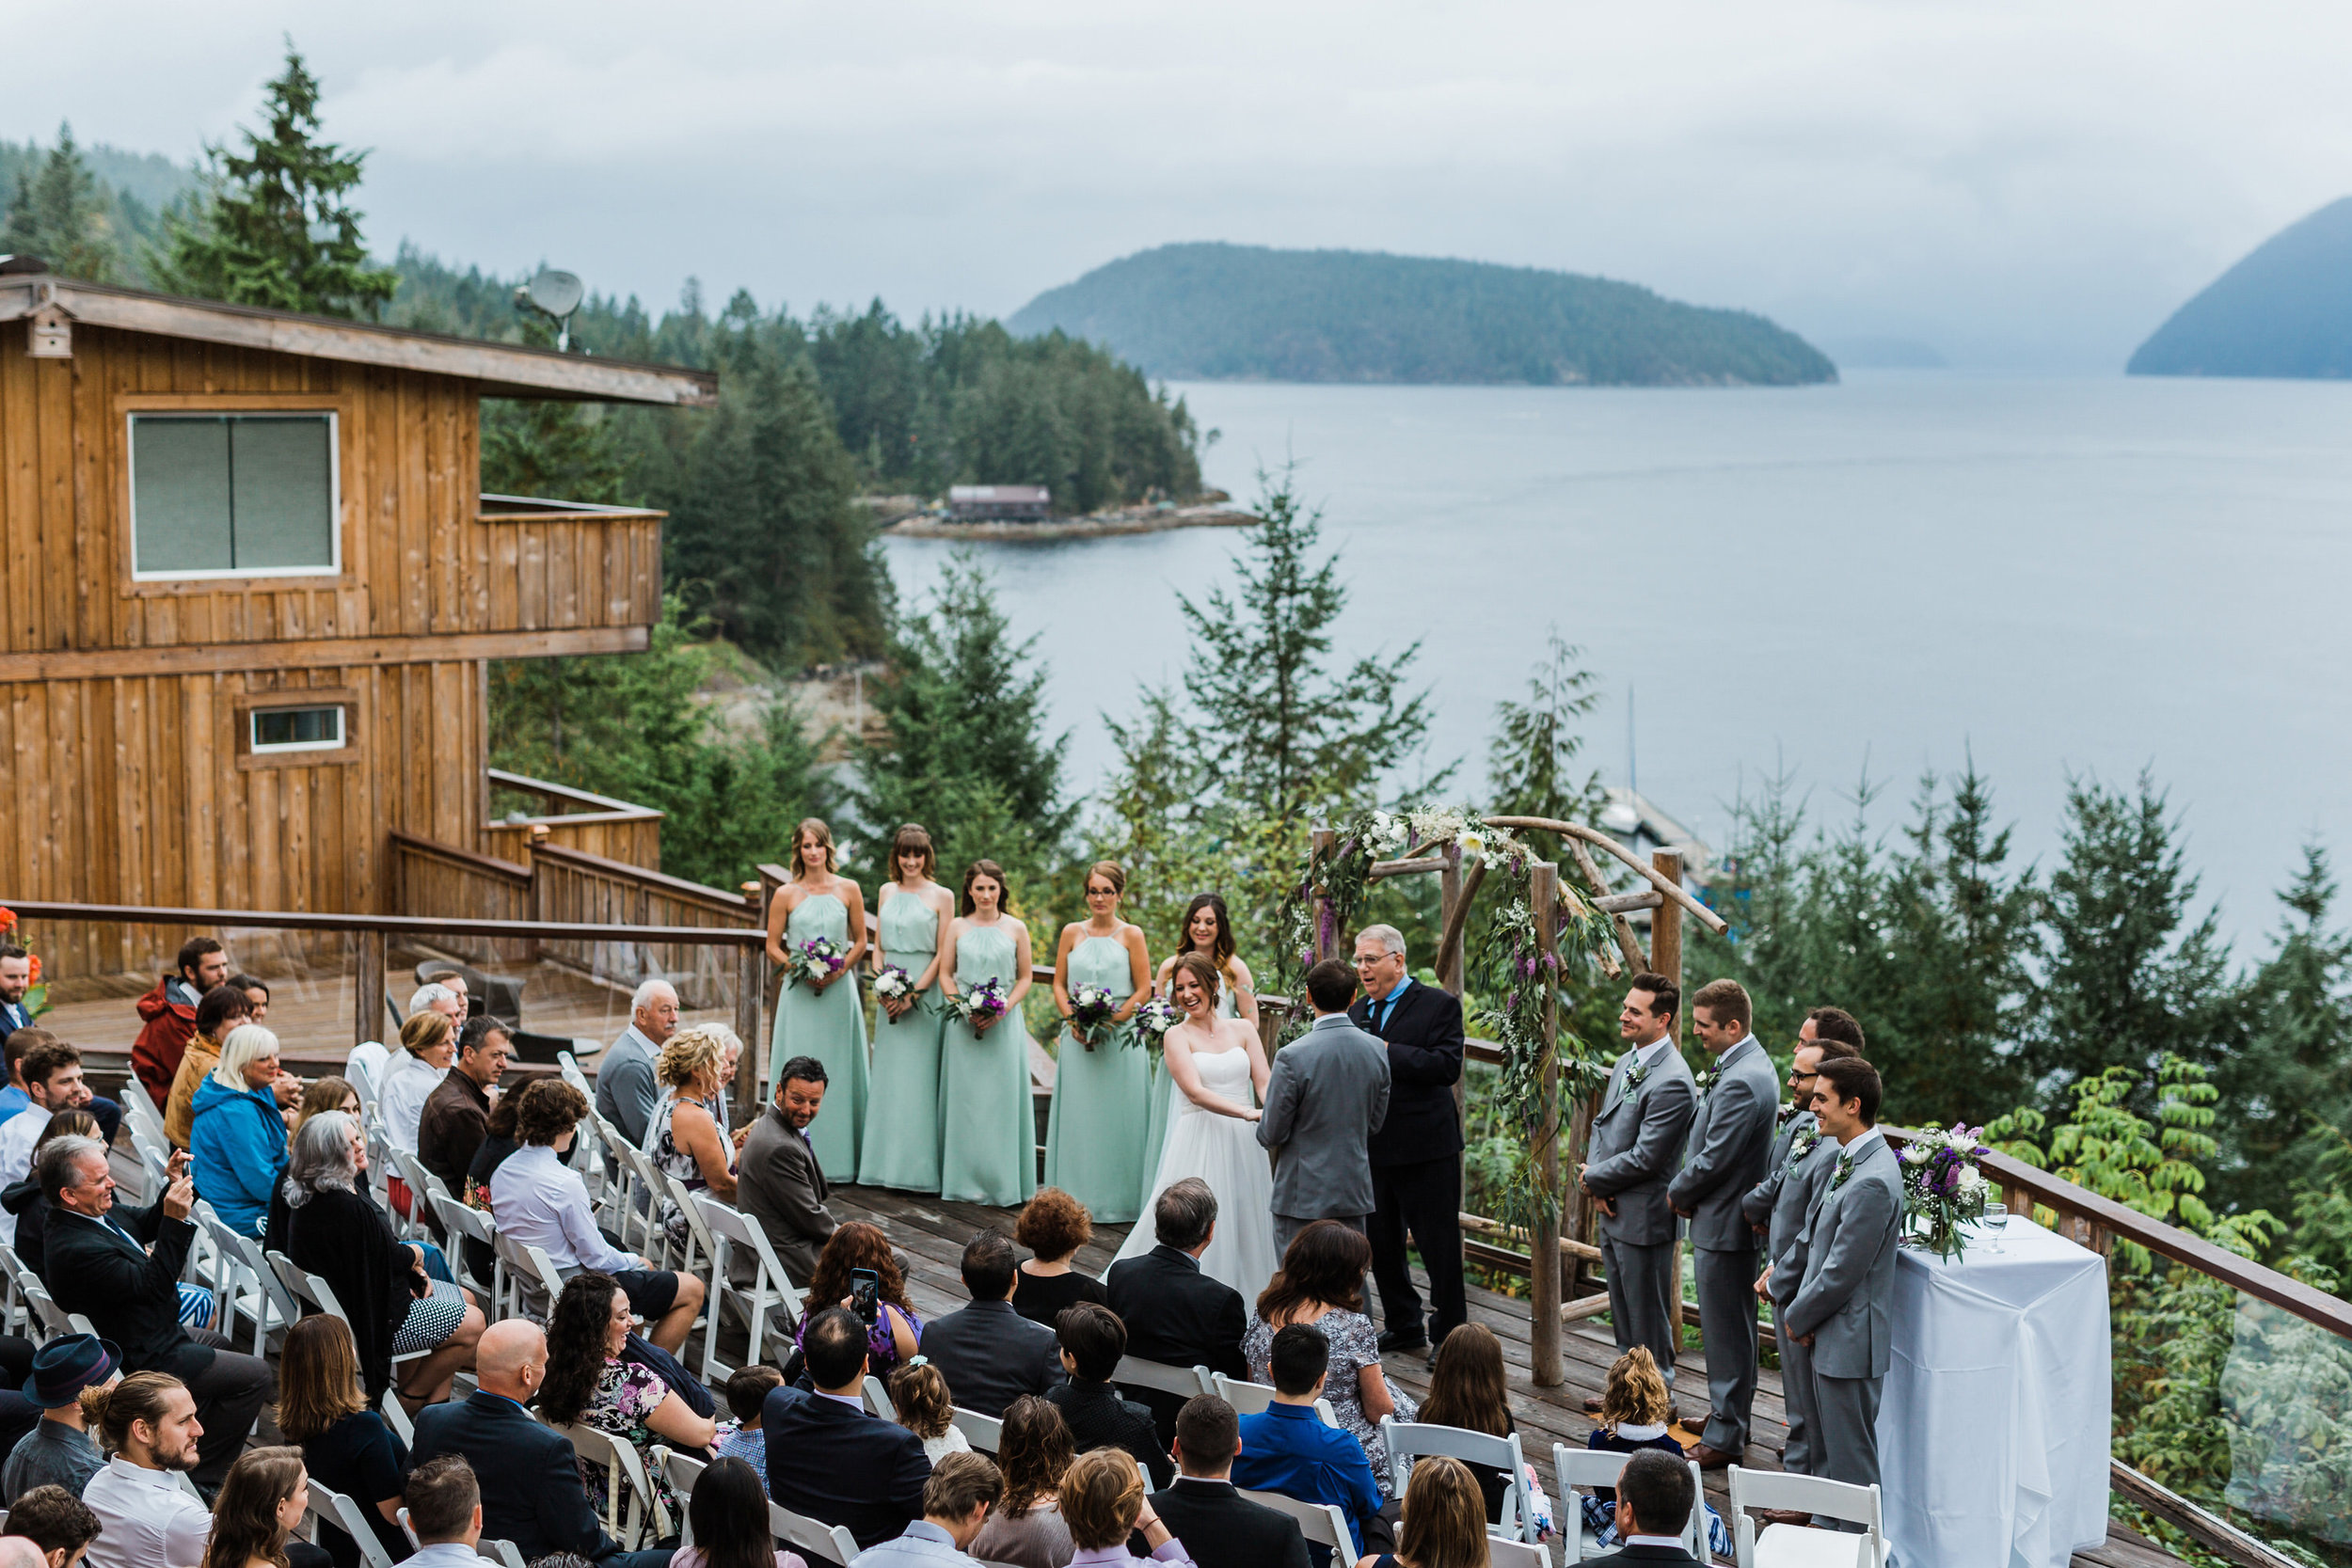 West Coast Wilderness Lodge Wedding Photos - Vancouver Wedding Photographer & Videographer - Sunshine Coast Wedding Photos - Sunshine Coast Wedding Photographer - Jennifer Picard Photography - IMG_4672.jpg